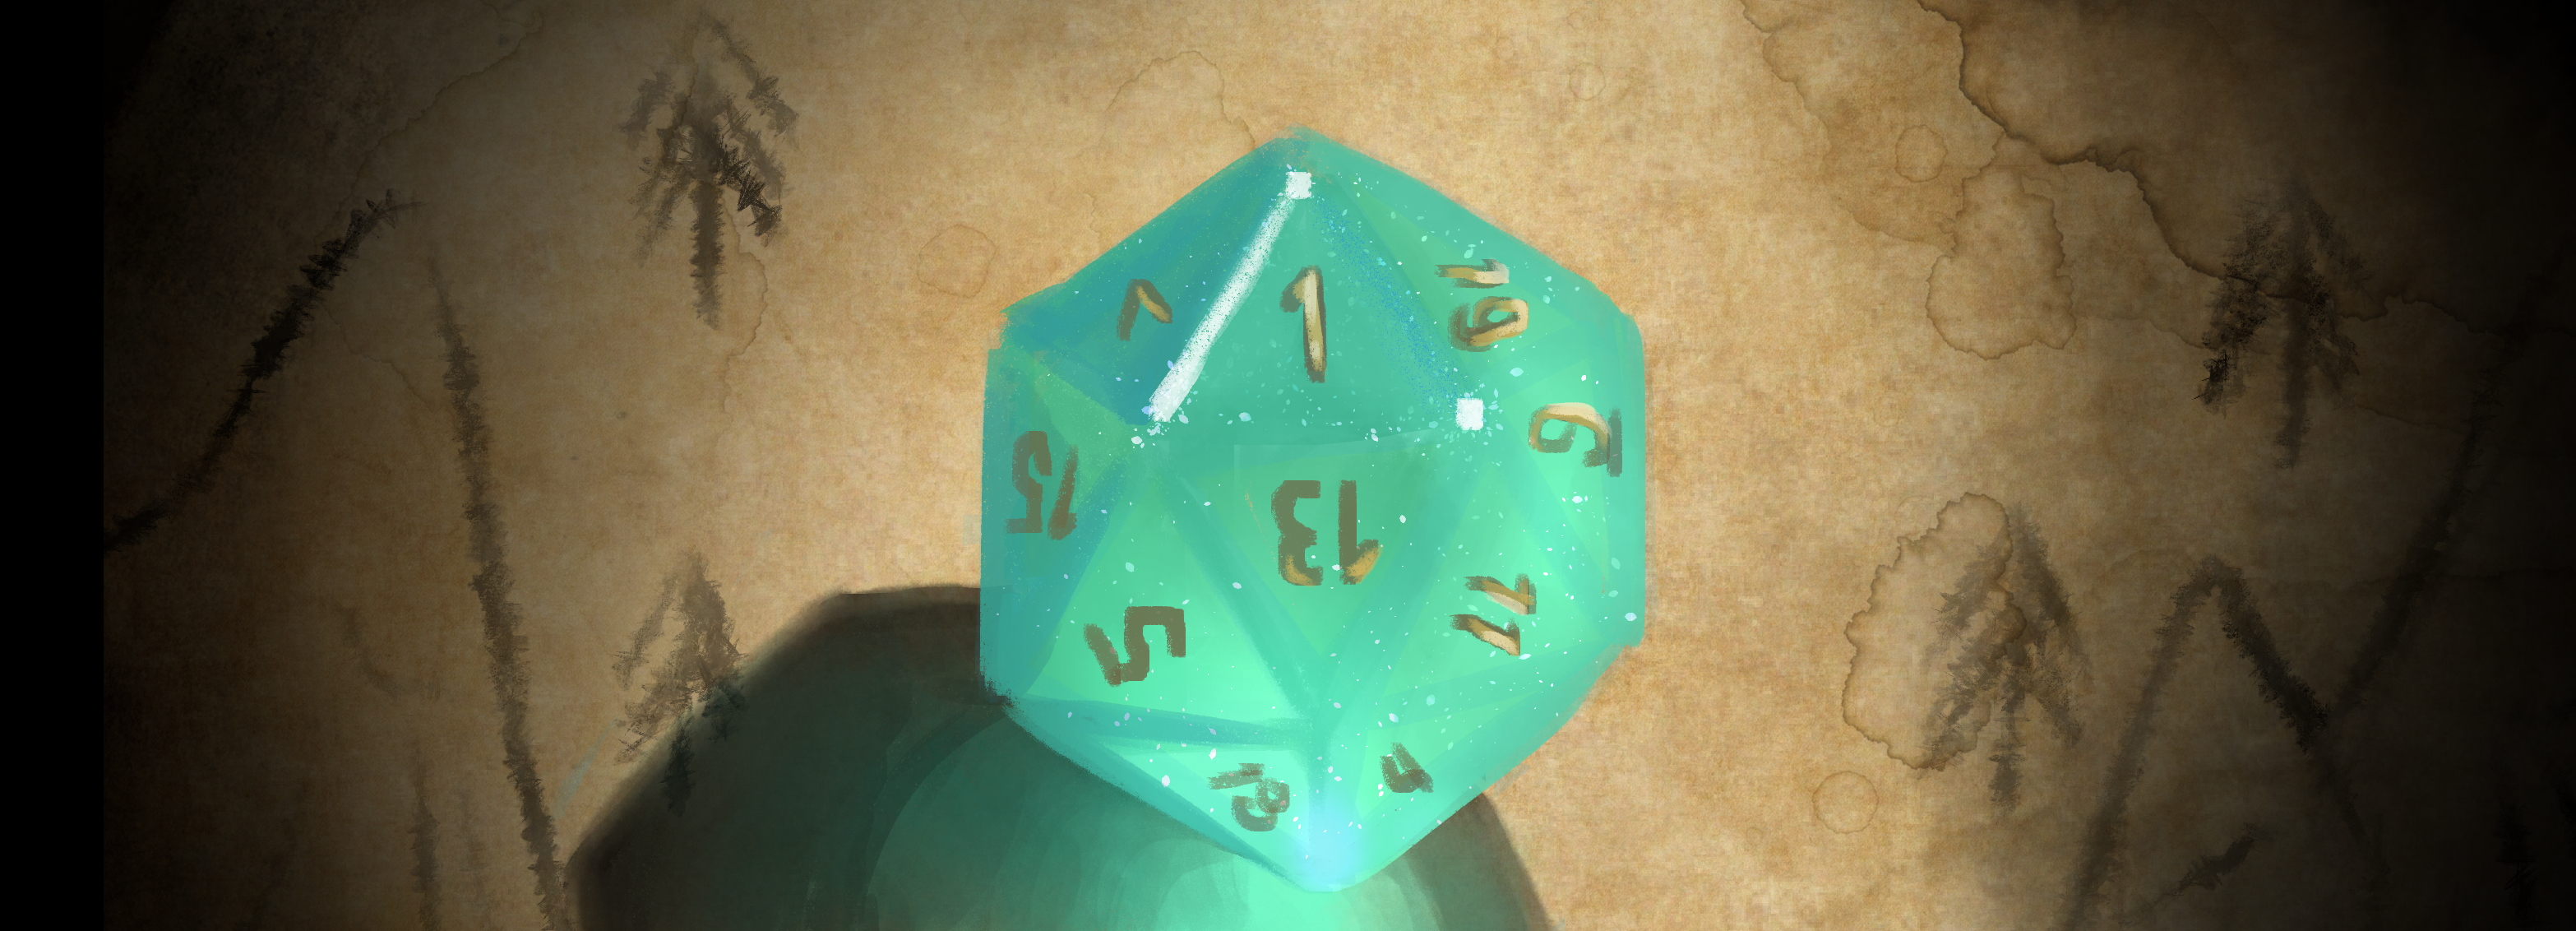 ADND_page_006_dice